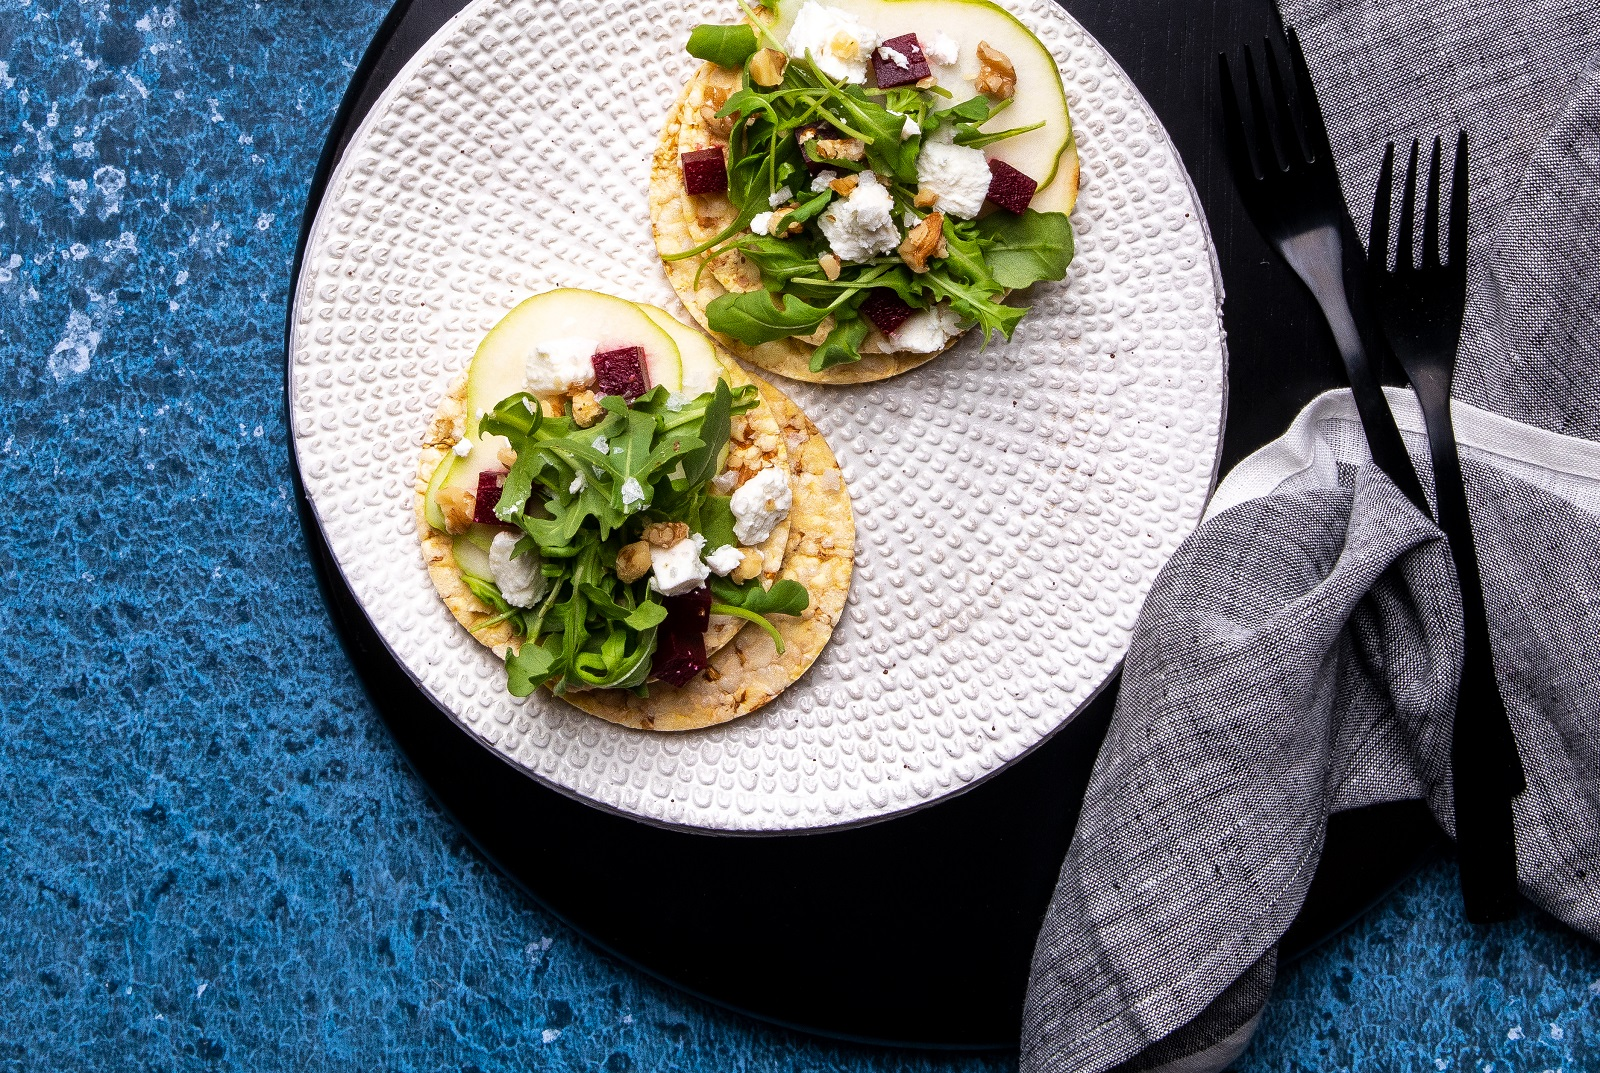 Pear, Beetroot, Persian Feta, Walnuts & Rocket on Corn Thins slices. Vegetarian